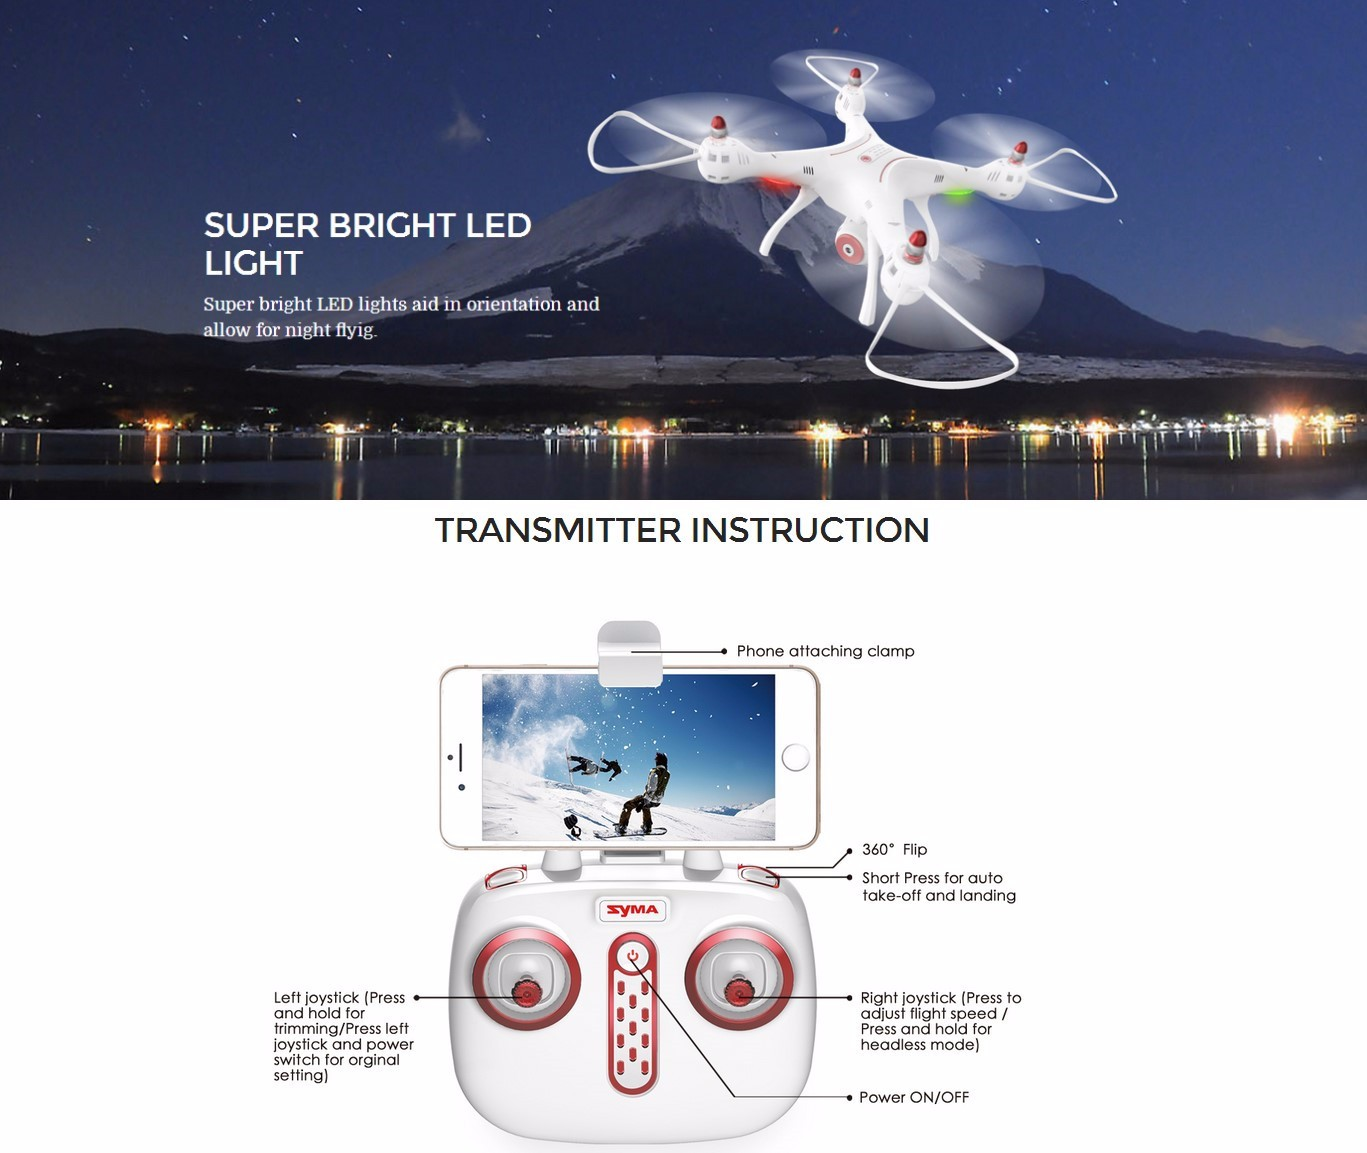 Syma X8SW WIFI FPV With 720P HD Camera 2.4G 4CH 6Axis Altitude Hold RC Quadcopter RTF